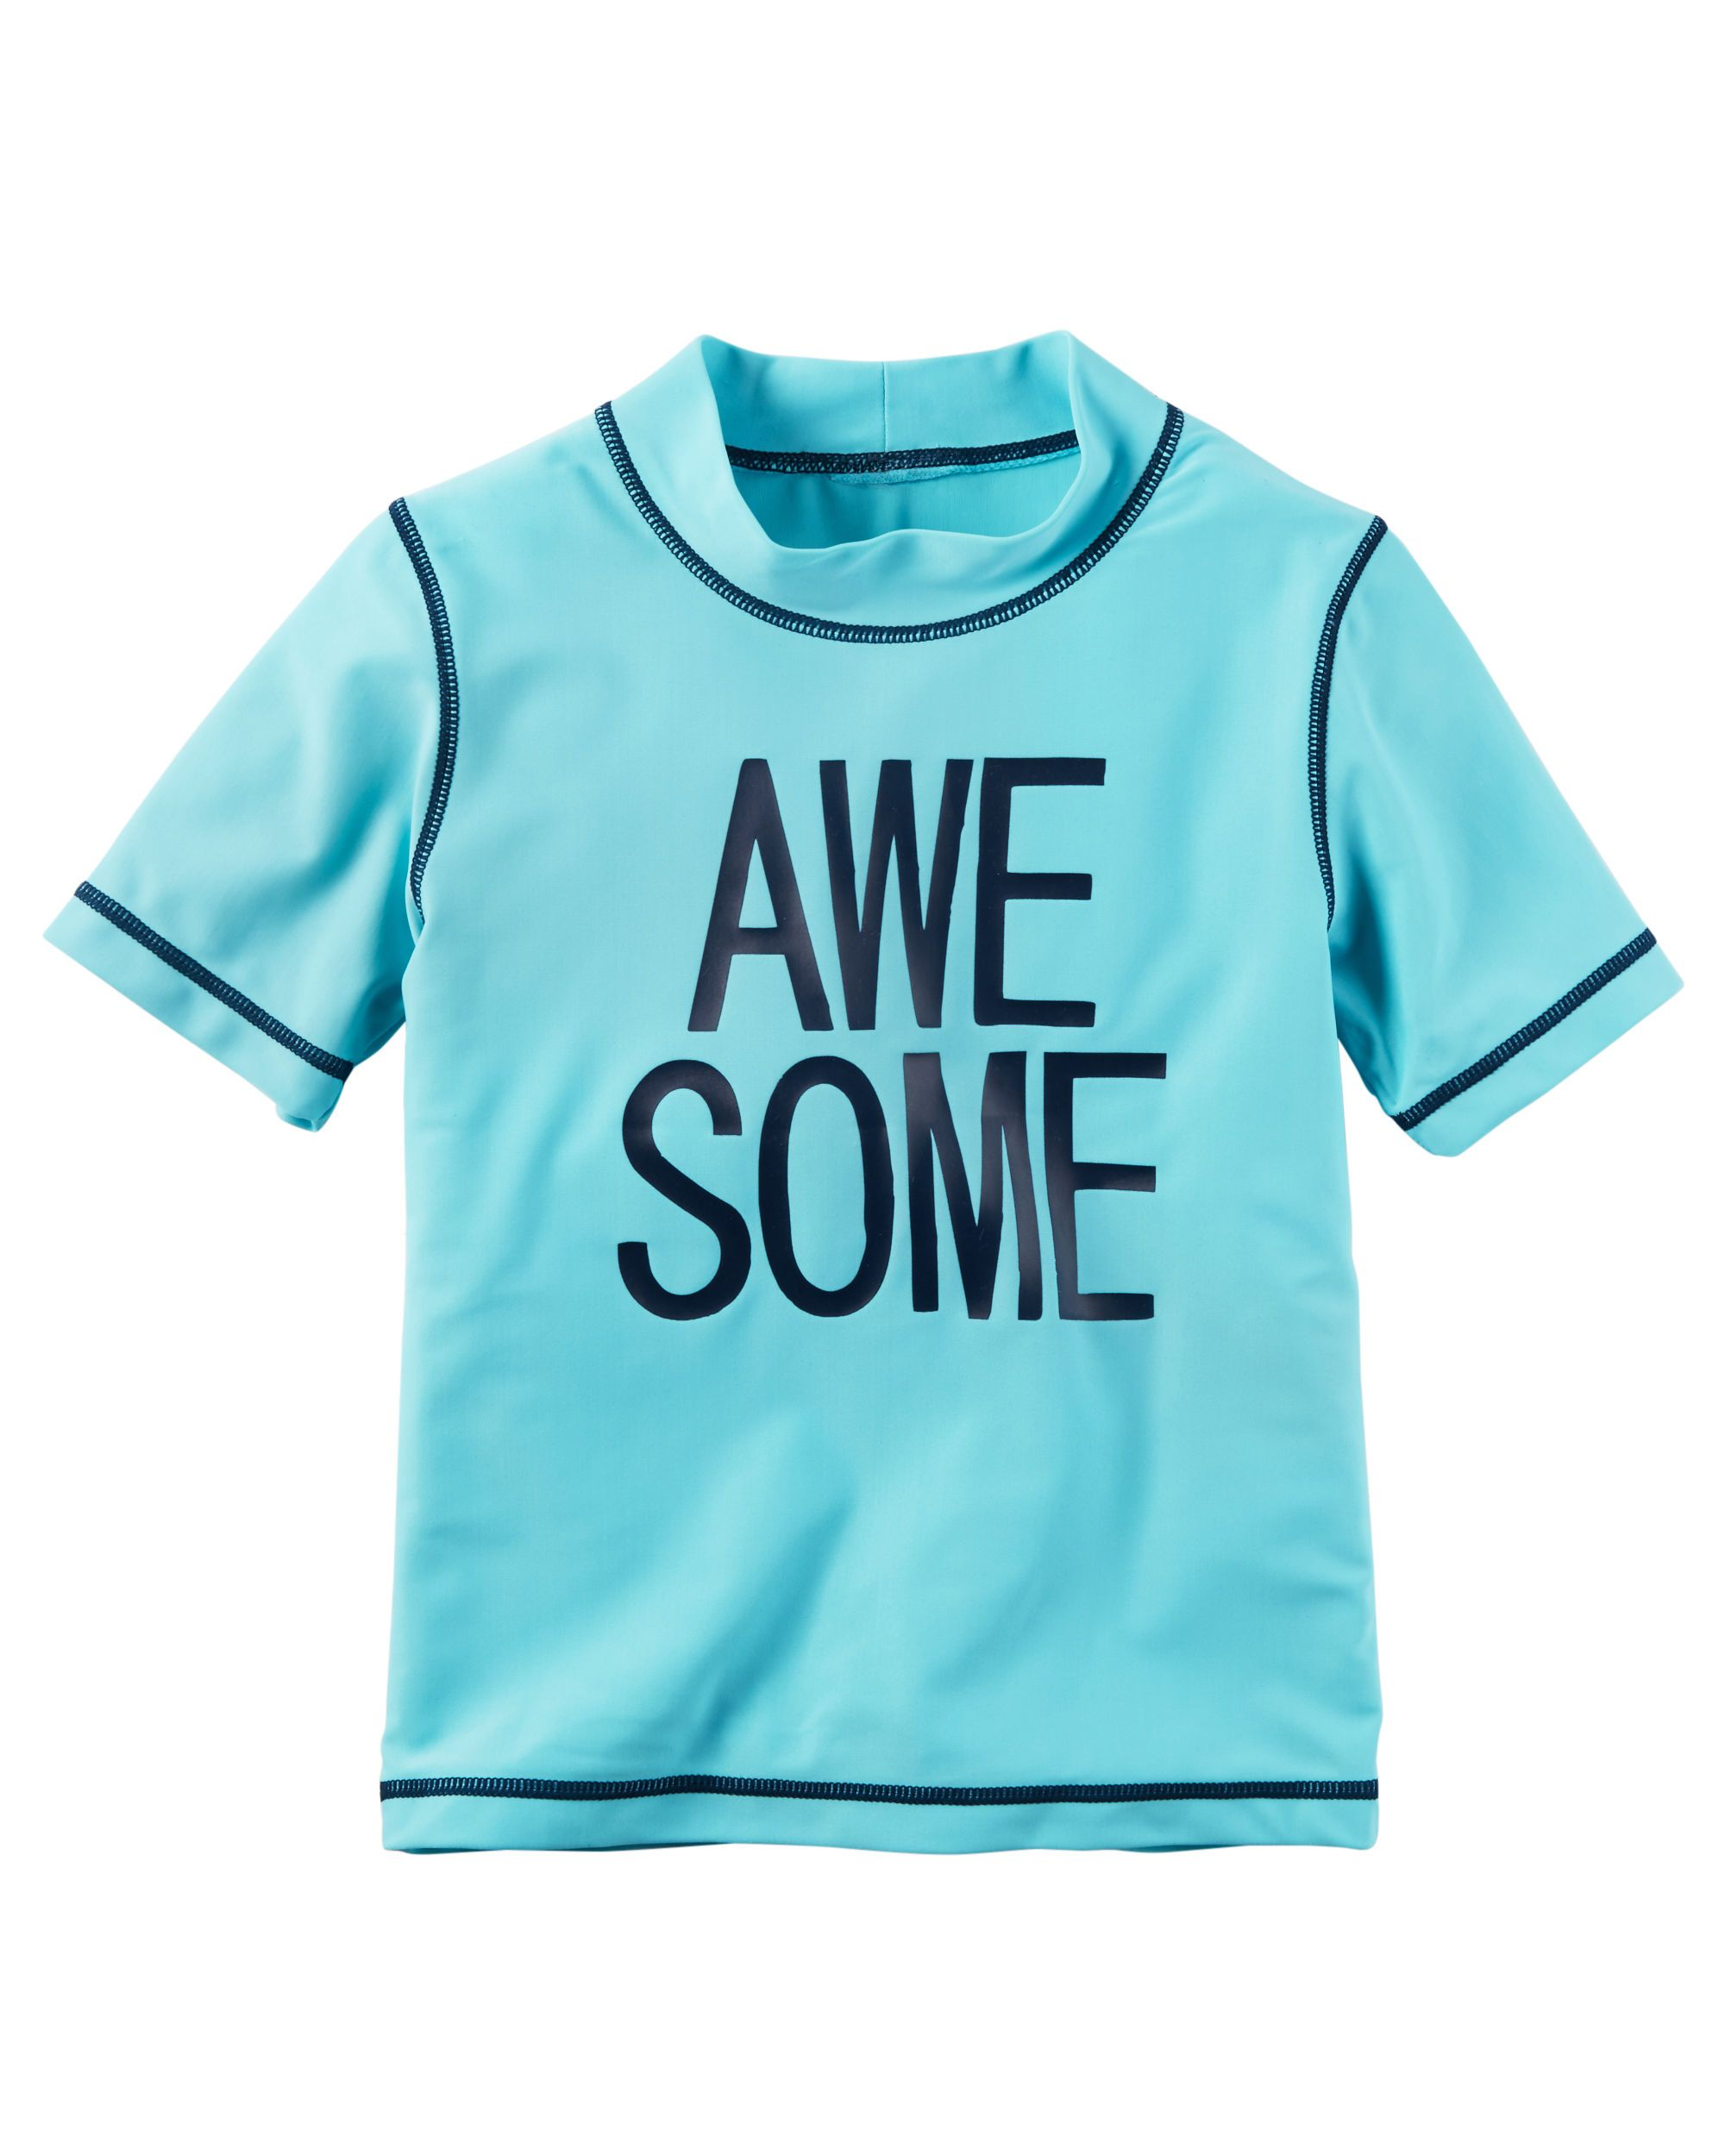 8f43a99f320a1 Awesome Rashguard | summer '18 style guide | Baby boy shirts, Baby ...